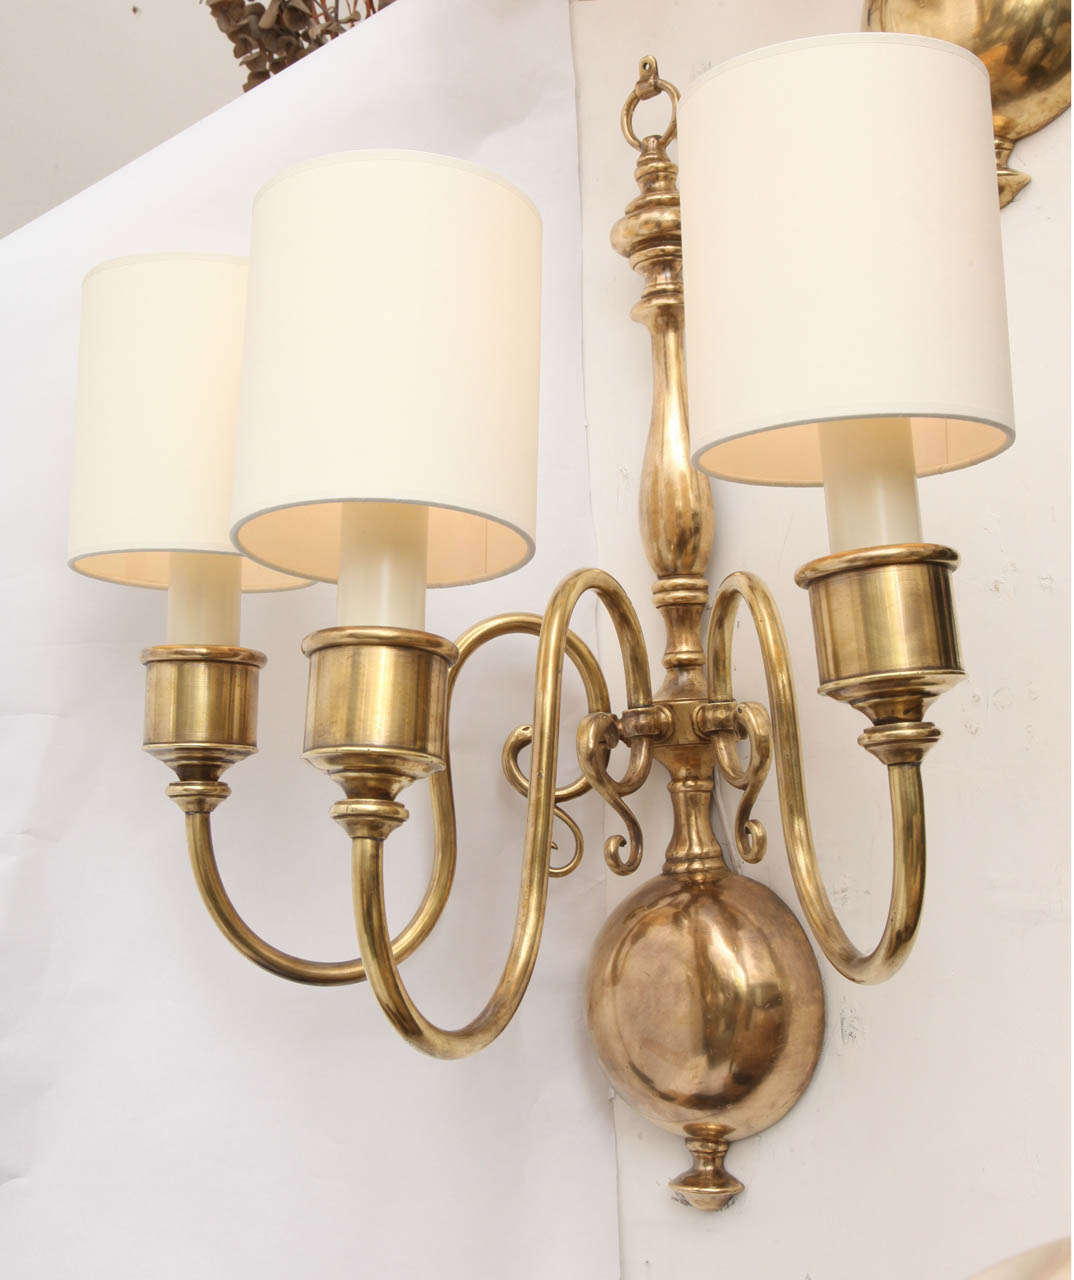 Pair of 1920s Classical Modern Brass Wall Sconces For Sale at 1stdibs